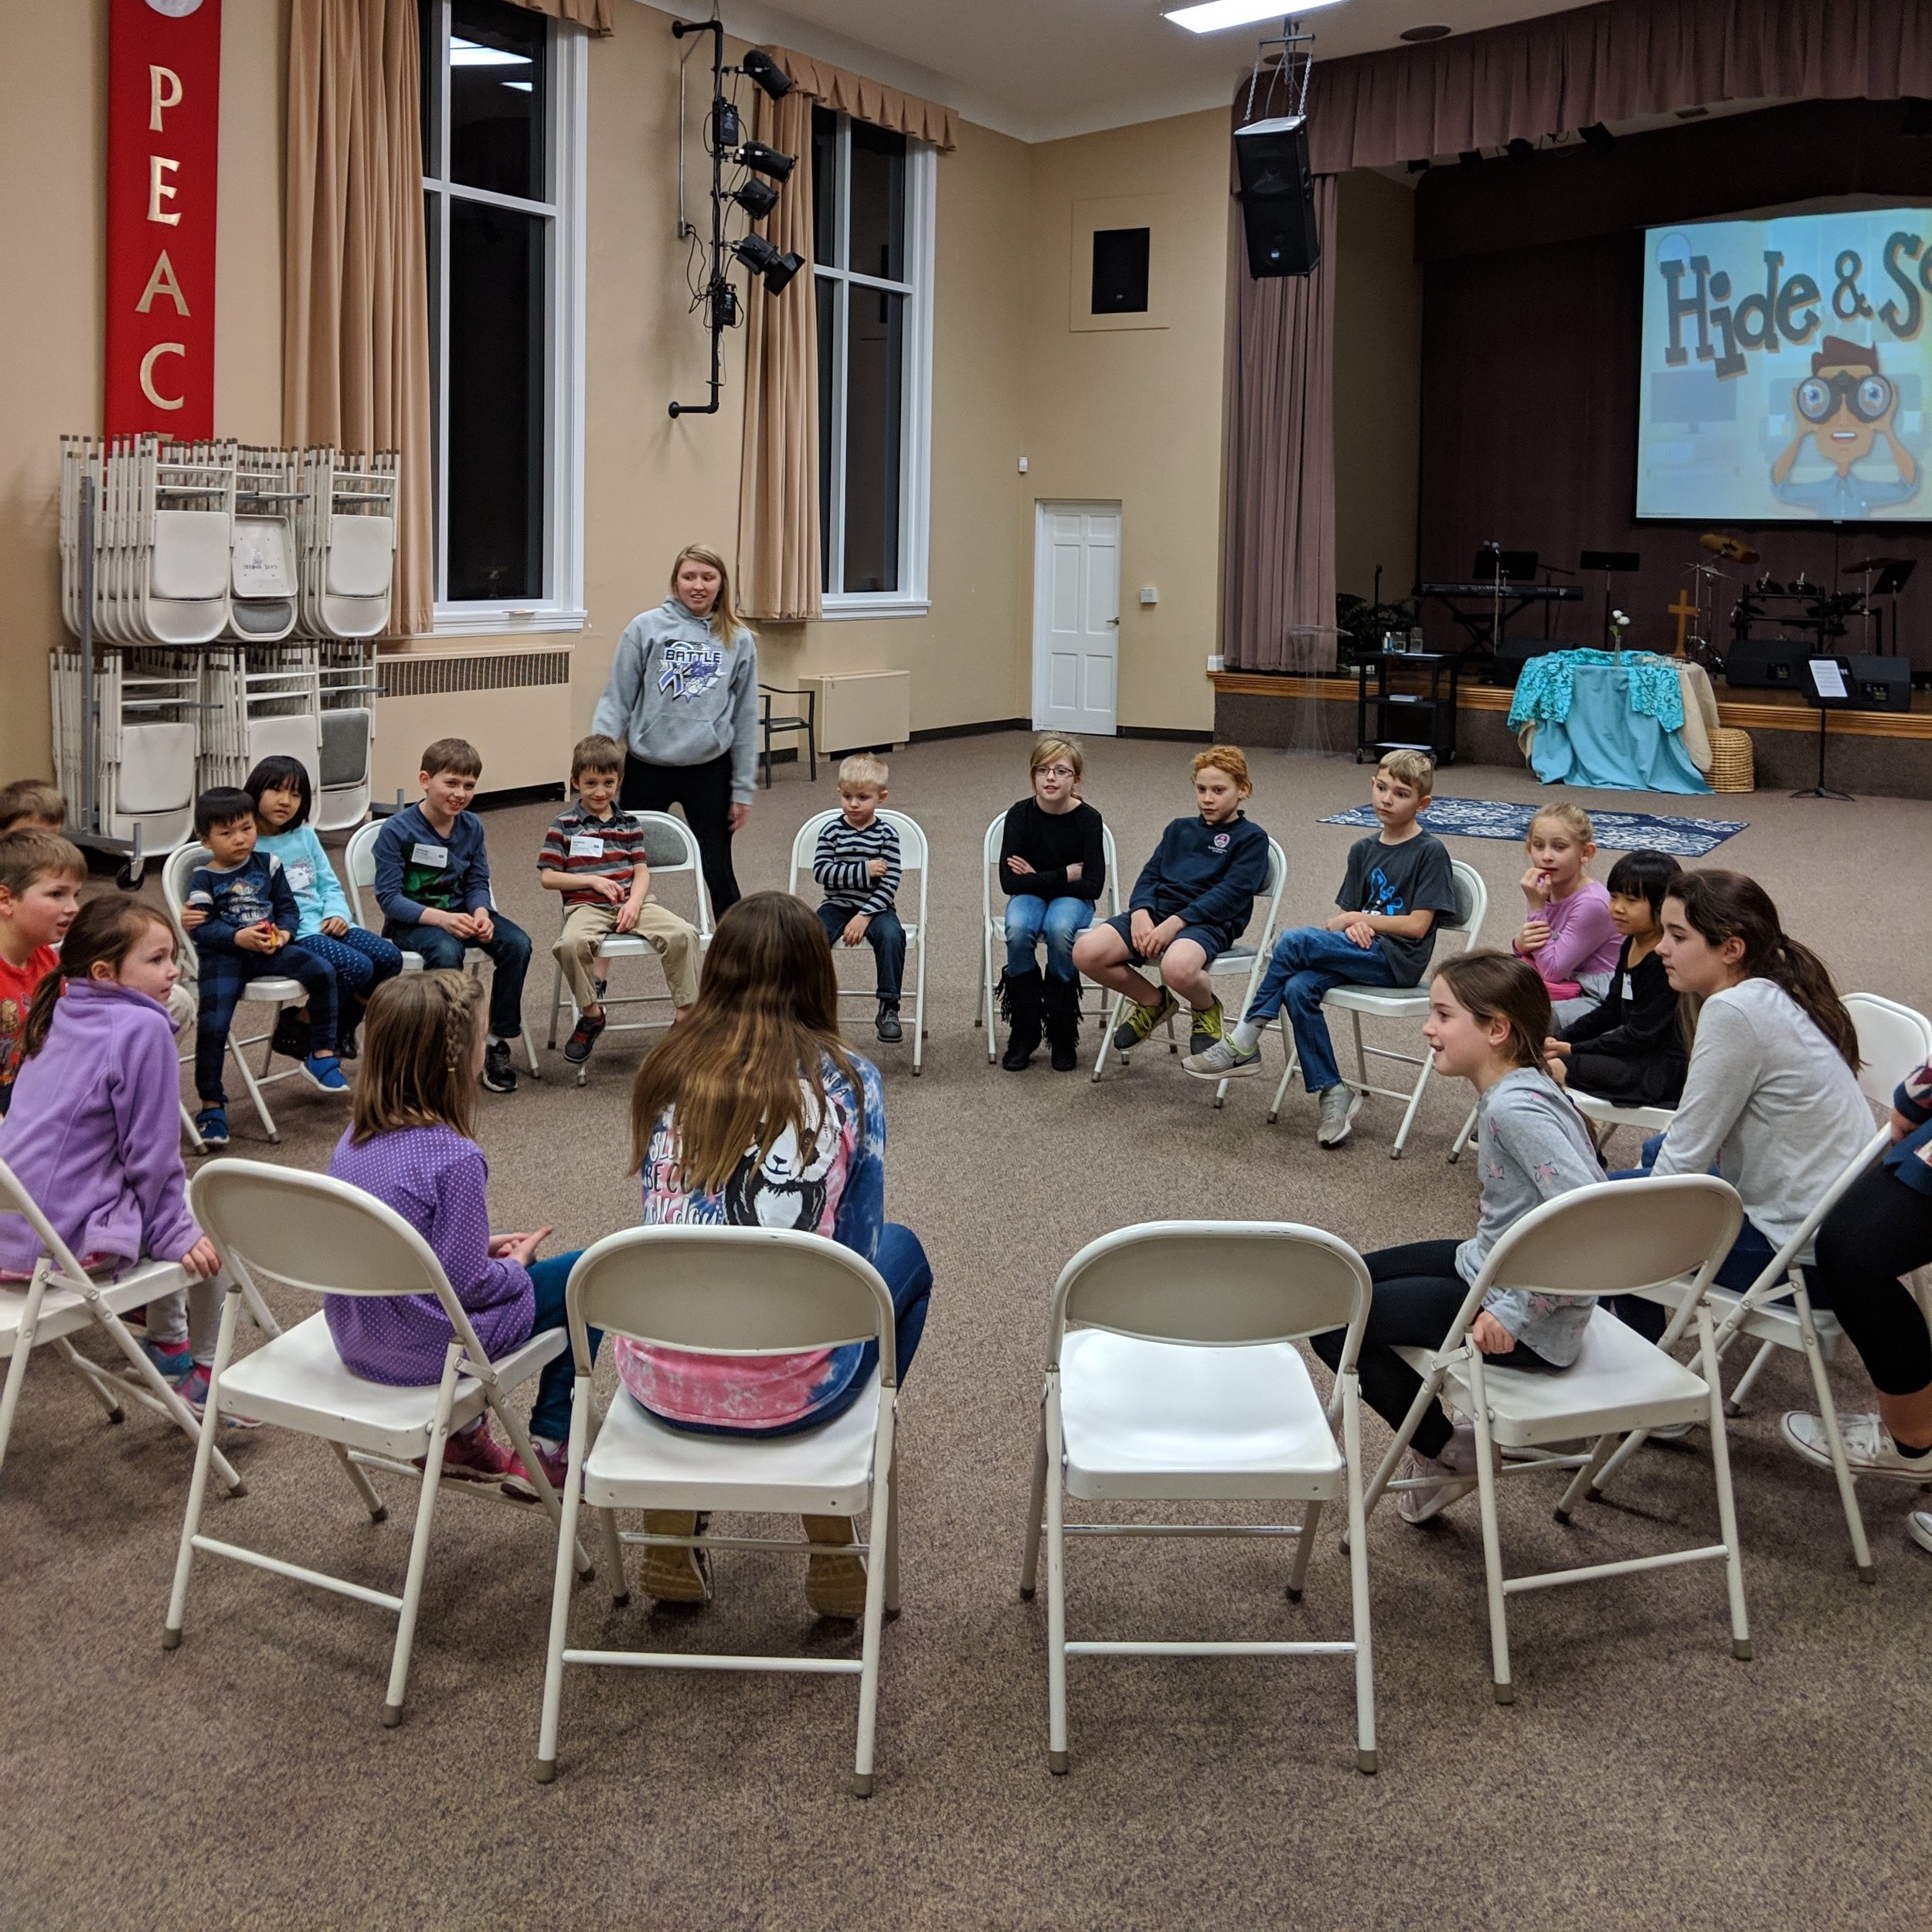 cave kids club - Wednesday evenings at 6:00 PMAges 3 years -5th grade. On most nights children will be divided into preschool and elementary groups. We will continue to use our curriculum to reinforce the stories and lessons we are learning on Sunday mornings.